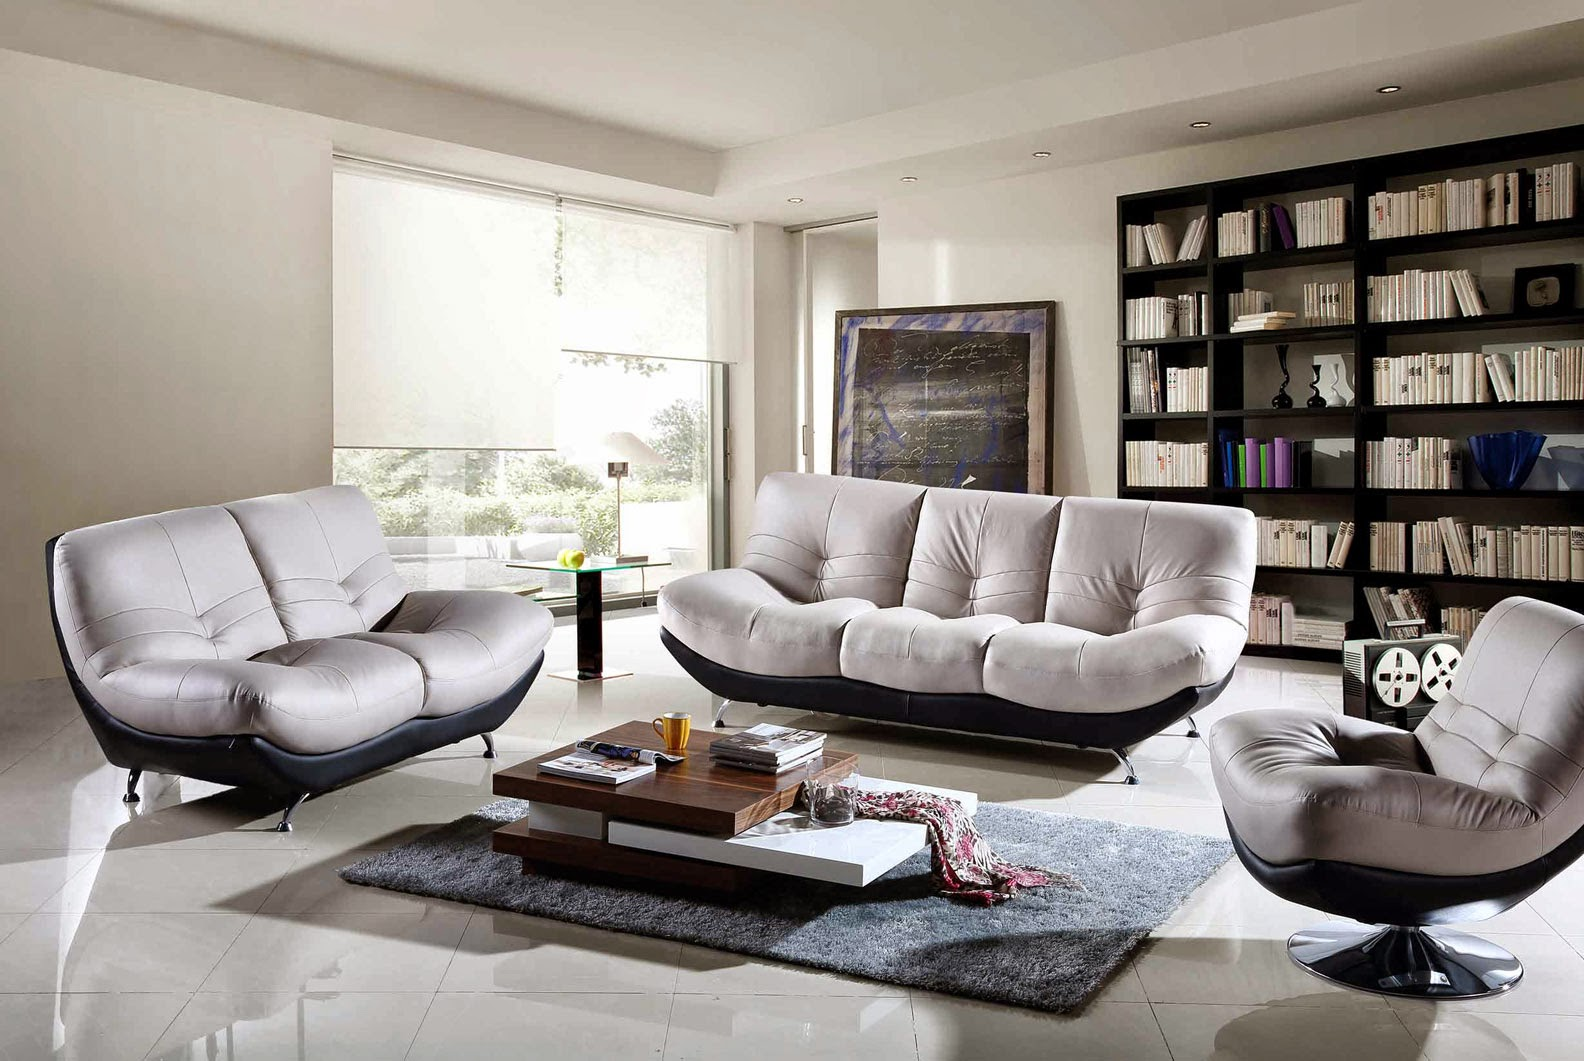 Choosing-Guest-Chair-Minimalistic-or-Minimalist-Sofa